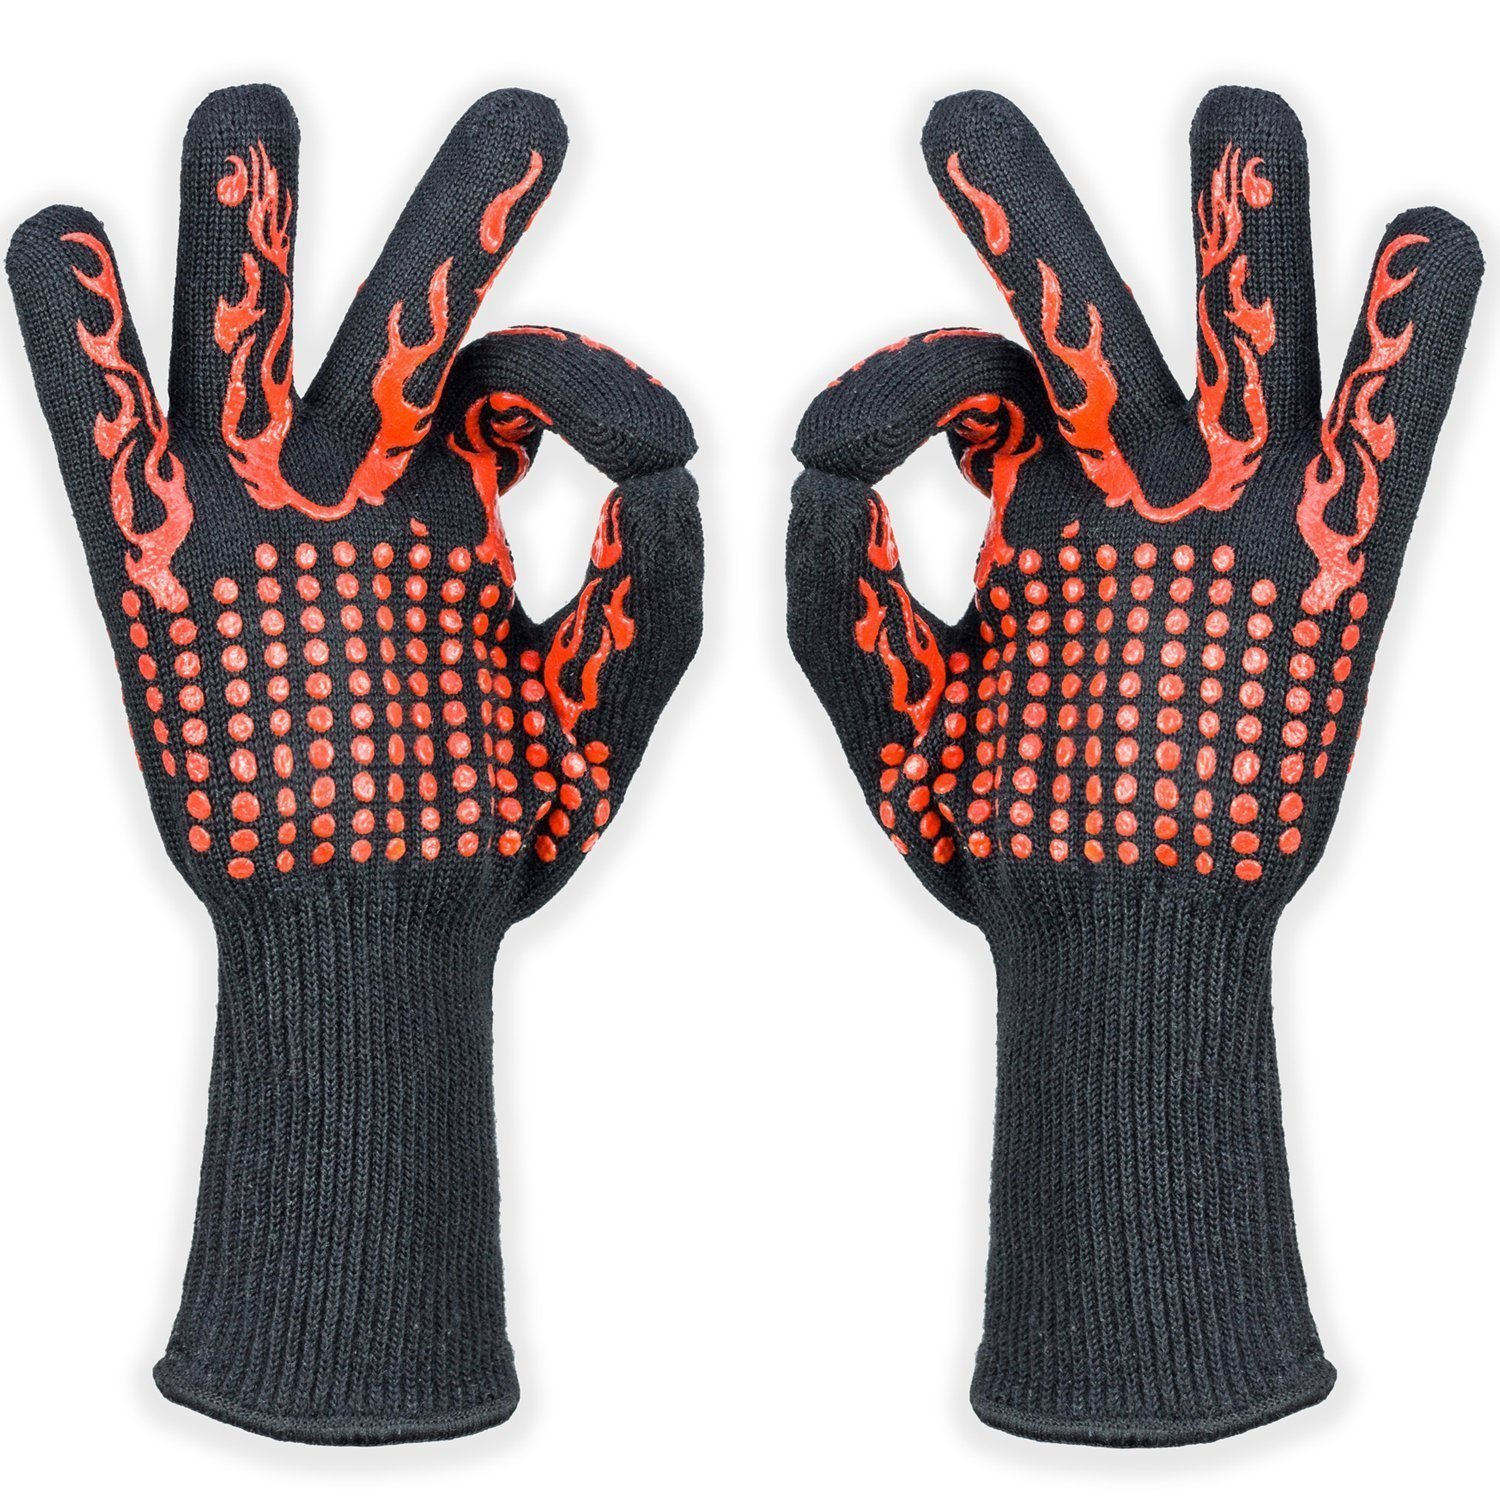 cdsnxore BBQ Oven Cooking Gloves, 932°F Extreme Heat Resistant Grilling Gloves Non-Slip Kitchen Mitts BBQ Fireplace Accessories Men Women, 1 Pair,13'' Extra Long